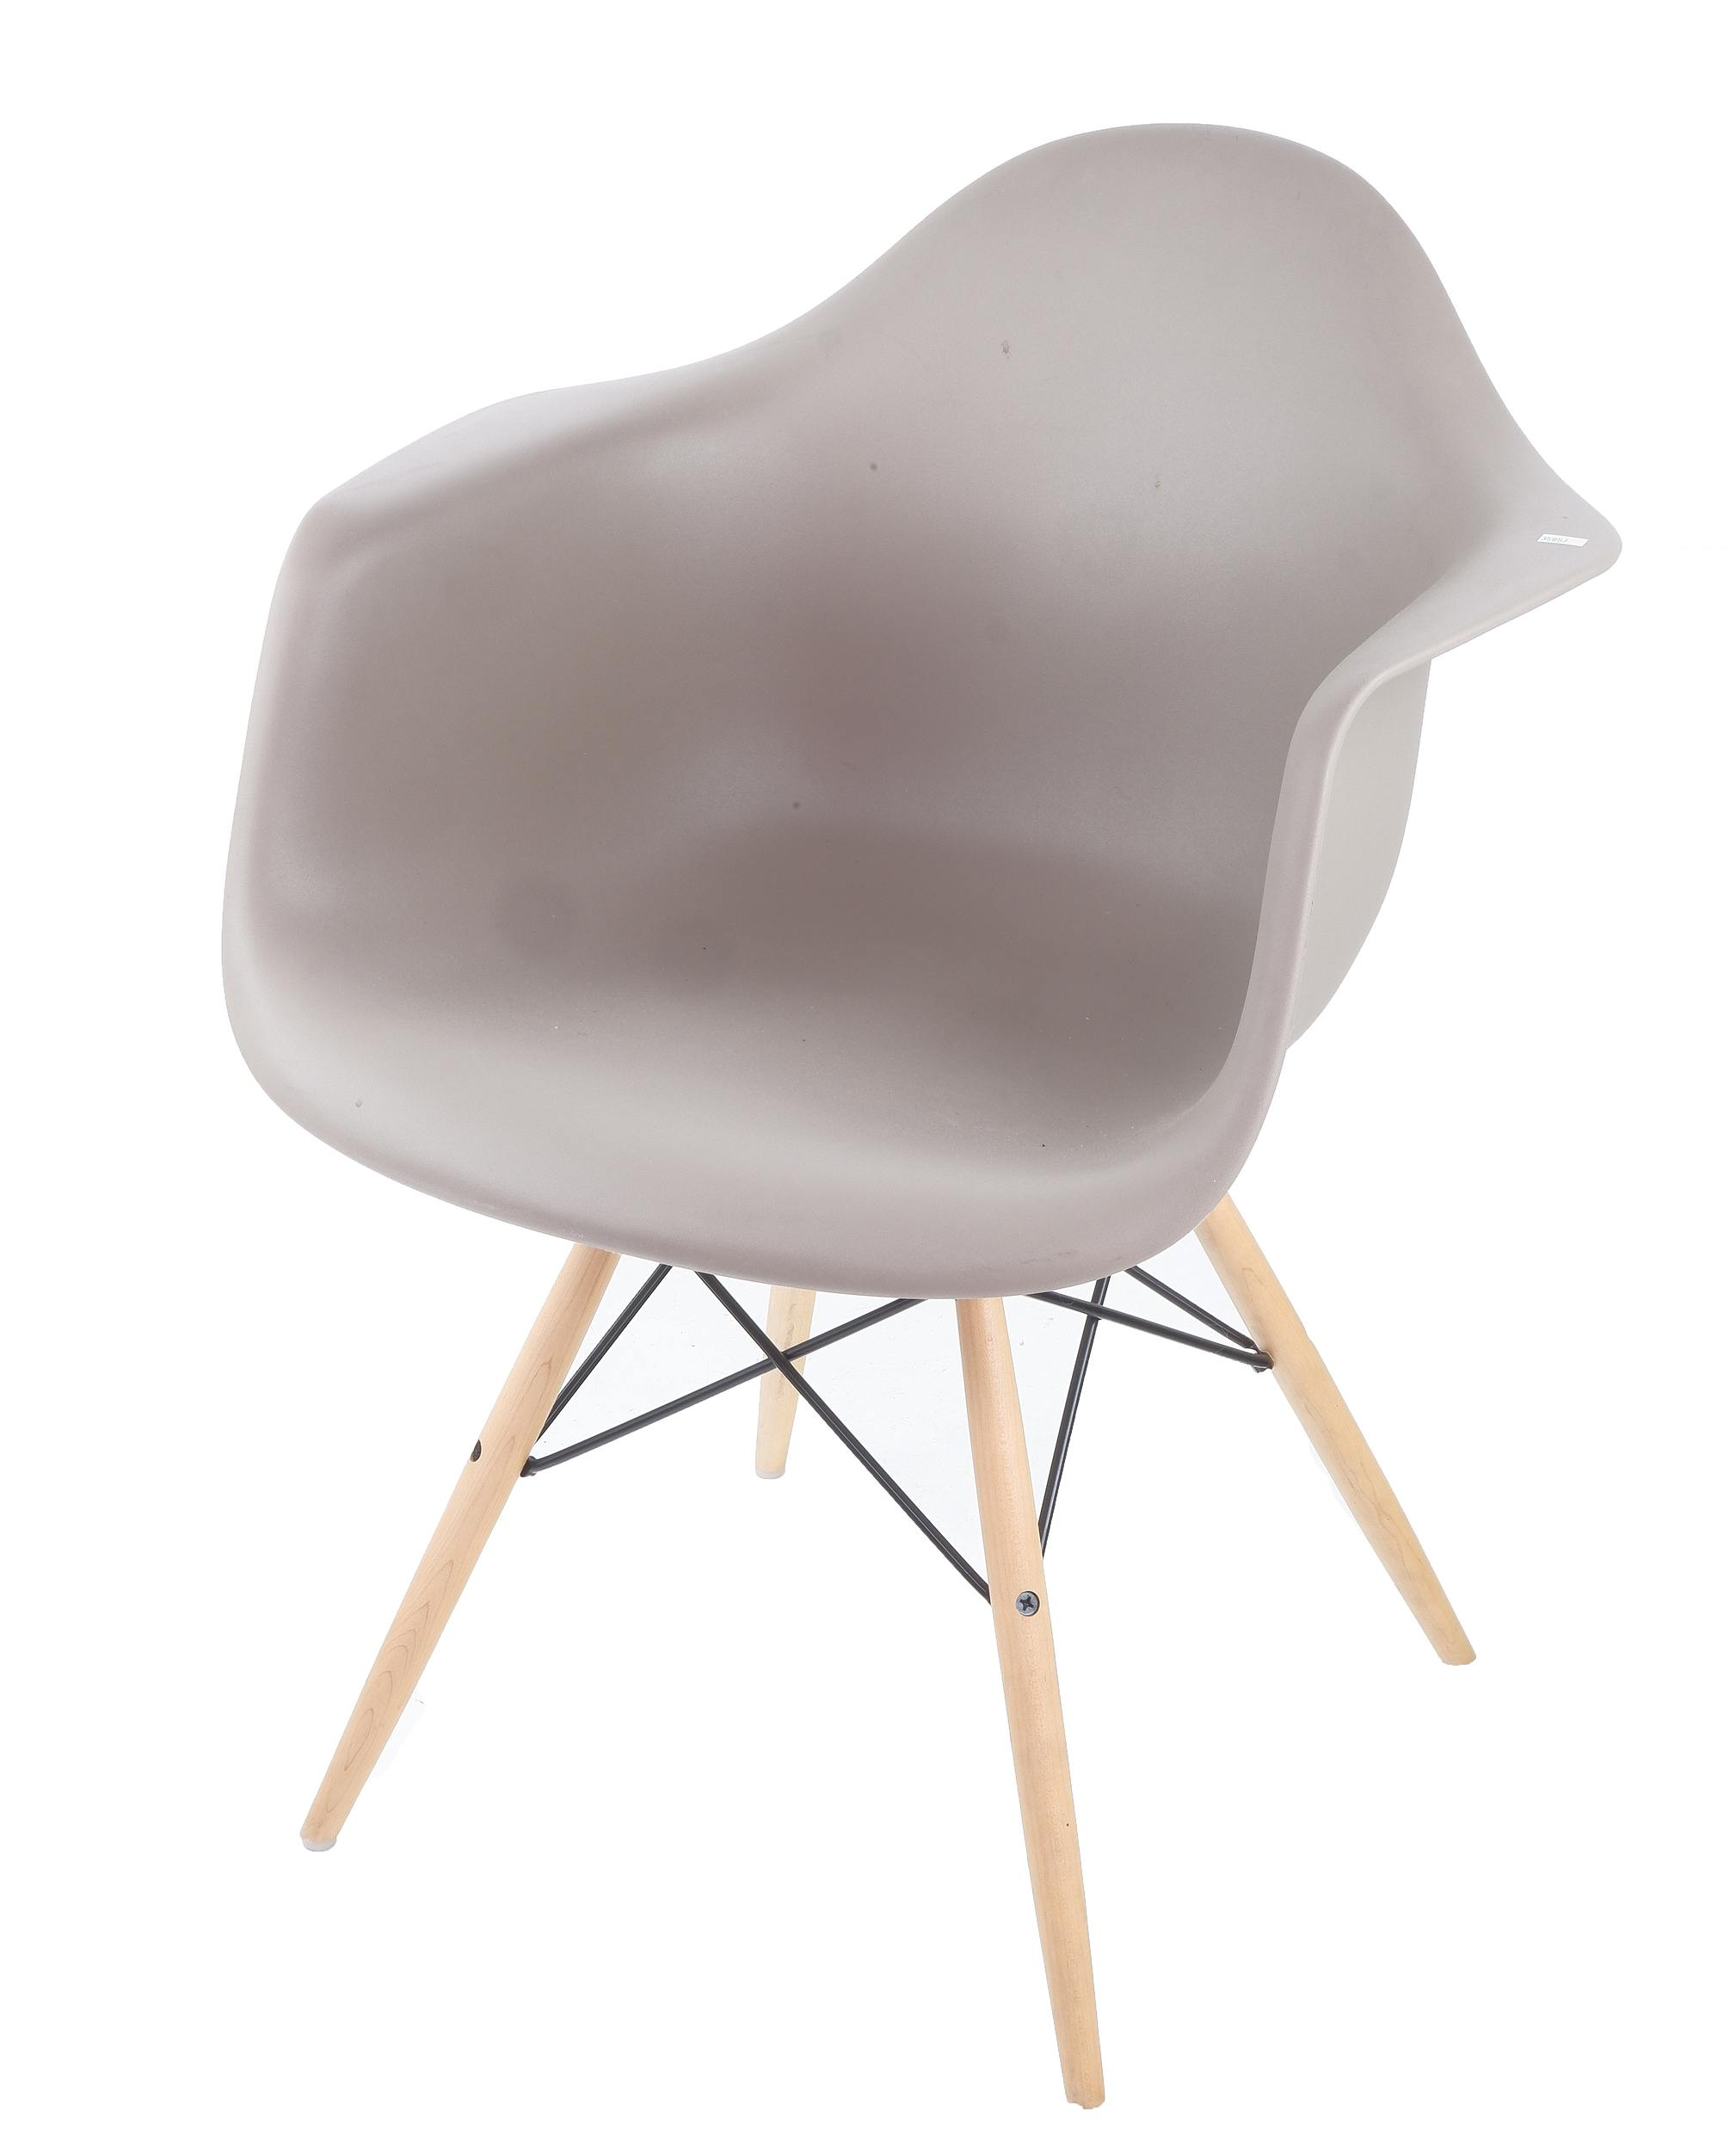 'DAW Moulded Plastic Armchair by Vitra, Designed by Charles and Ray Eames'